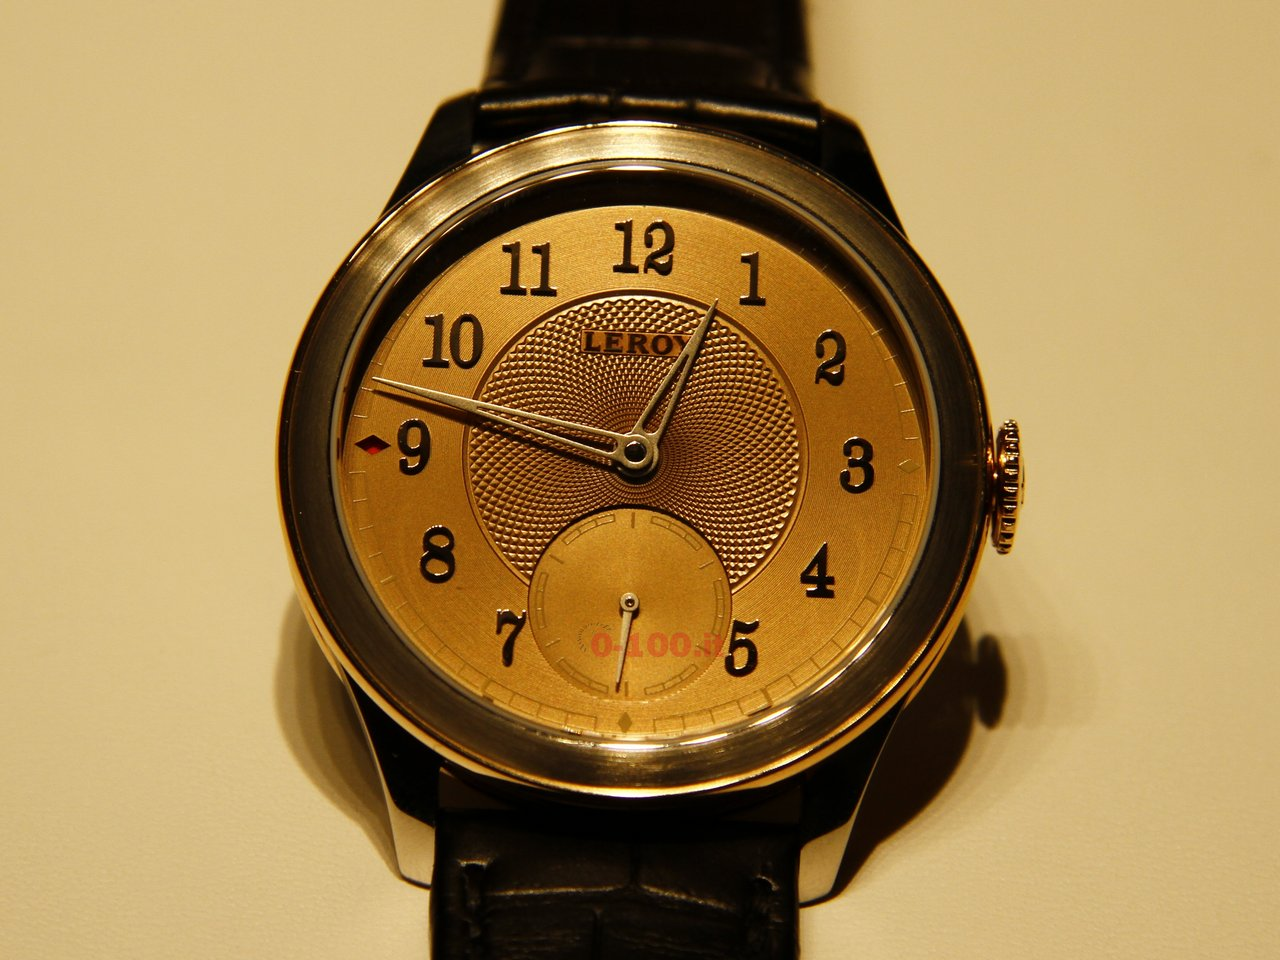 baselworld-2015_leroy-chronometer-l200-0-100-11